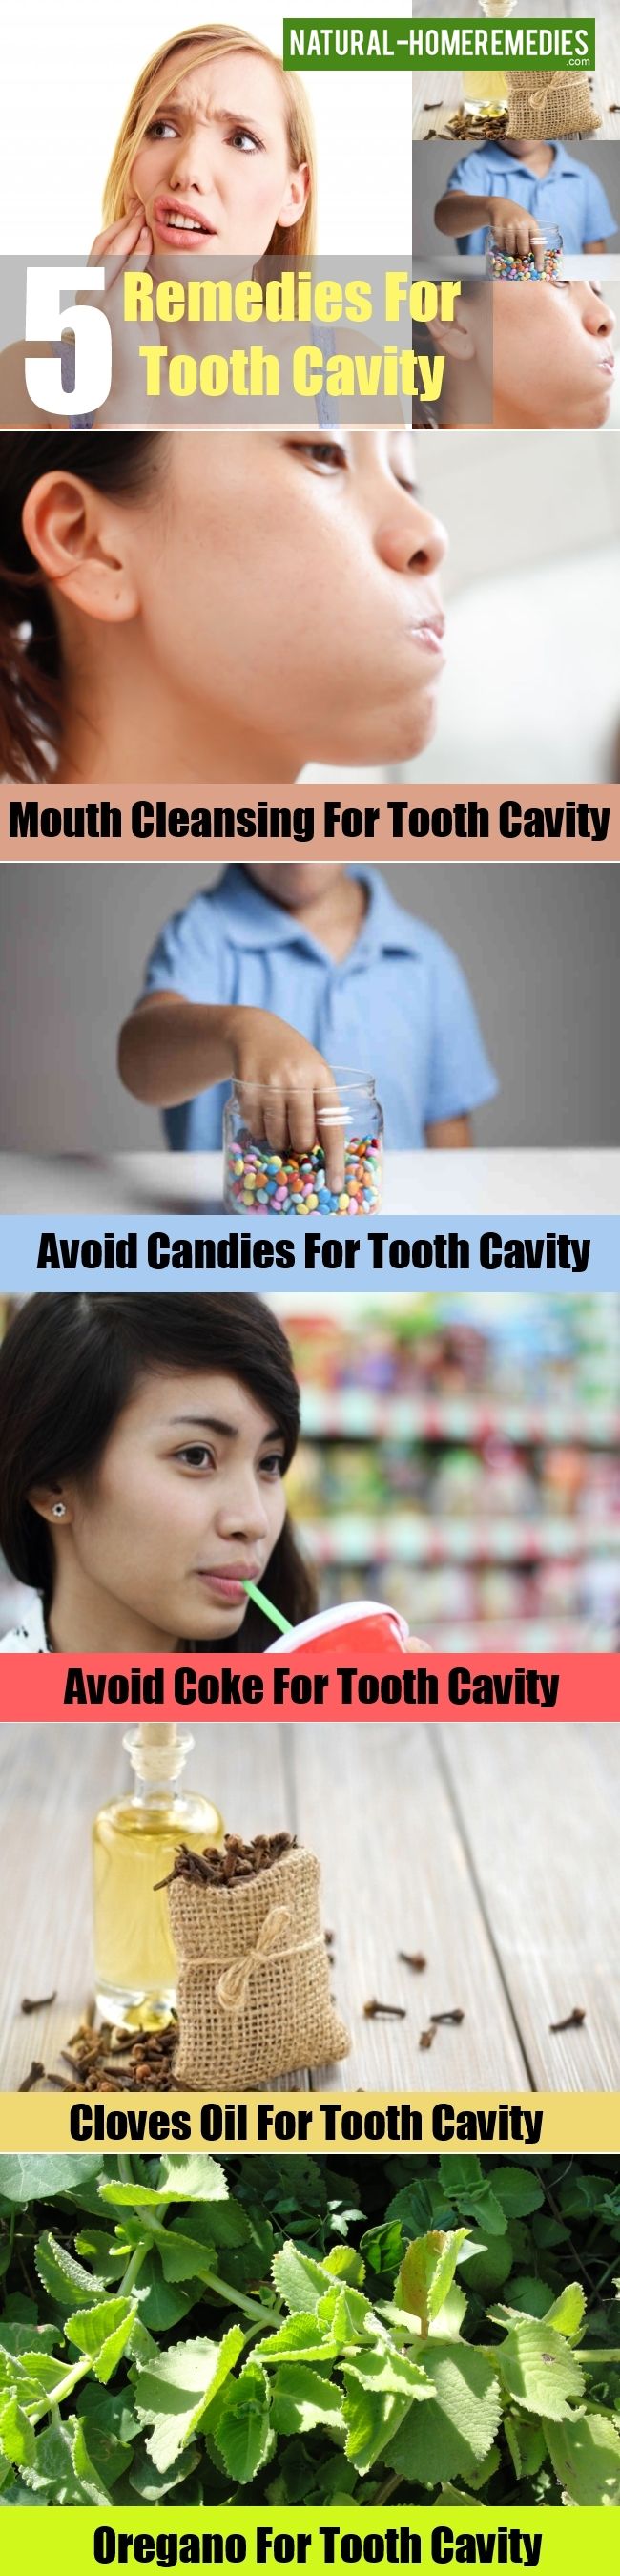 Remedies For Tooth Cavity